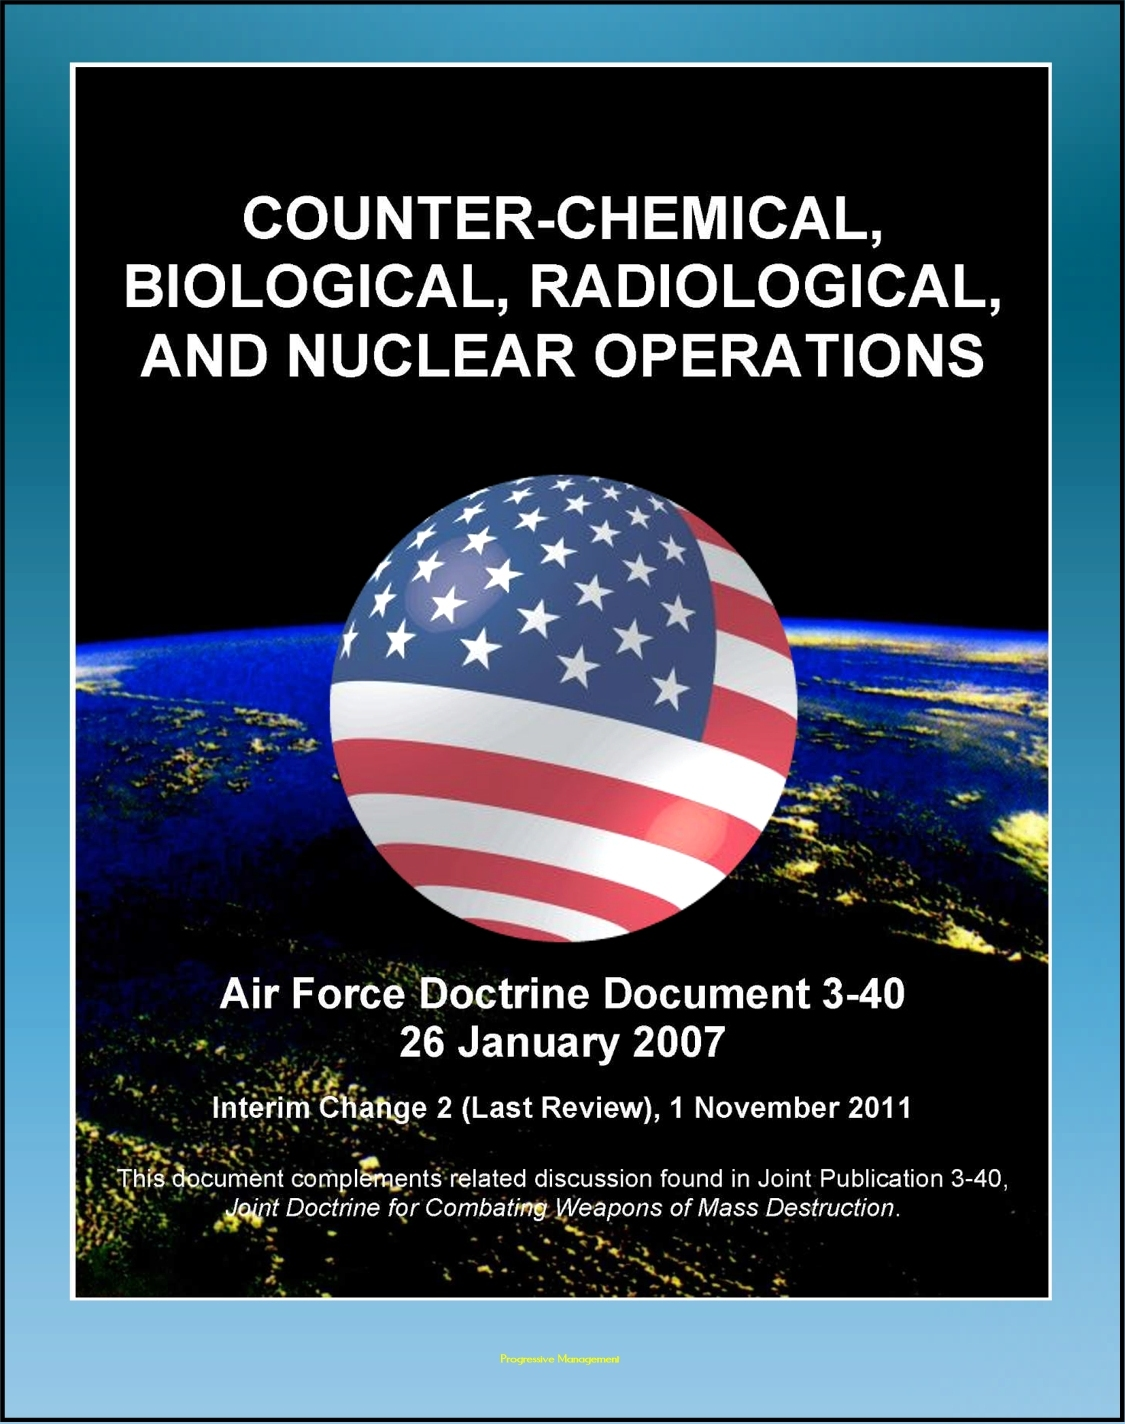 Air Force Doctrine Document 3-40: Counter-Chemical, Biological, Radiological, and Nuclear Operations (CBRN) - Proliferation Prevention, Strategic Enablers, Detection and Monitoring